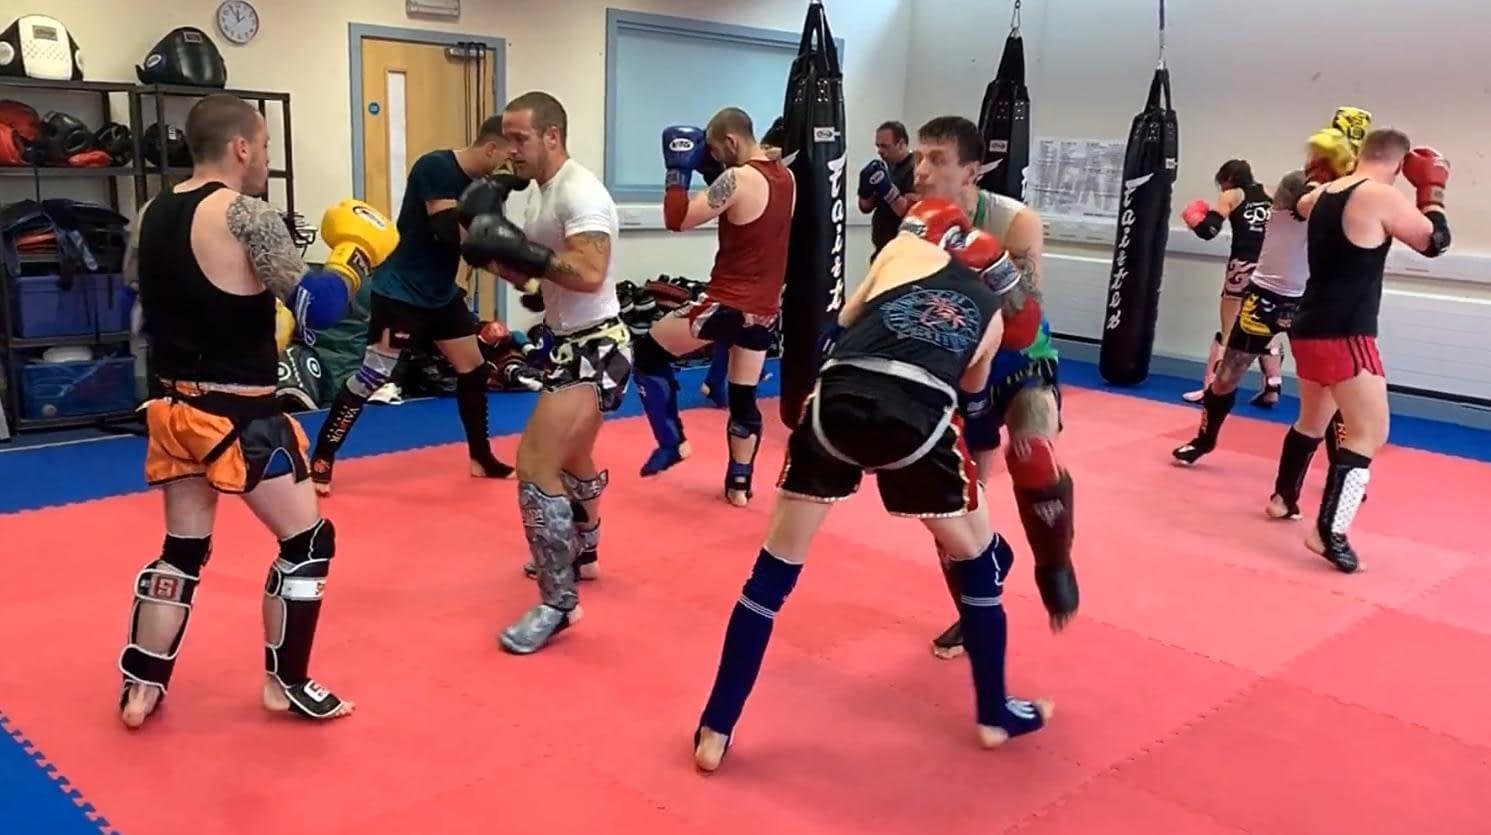 Thai Boxing Sparring Cornwall UK